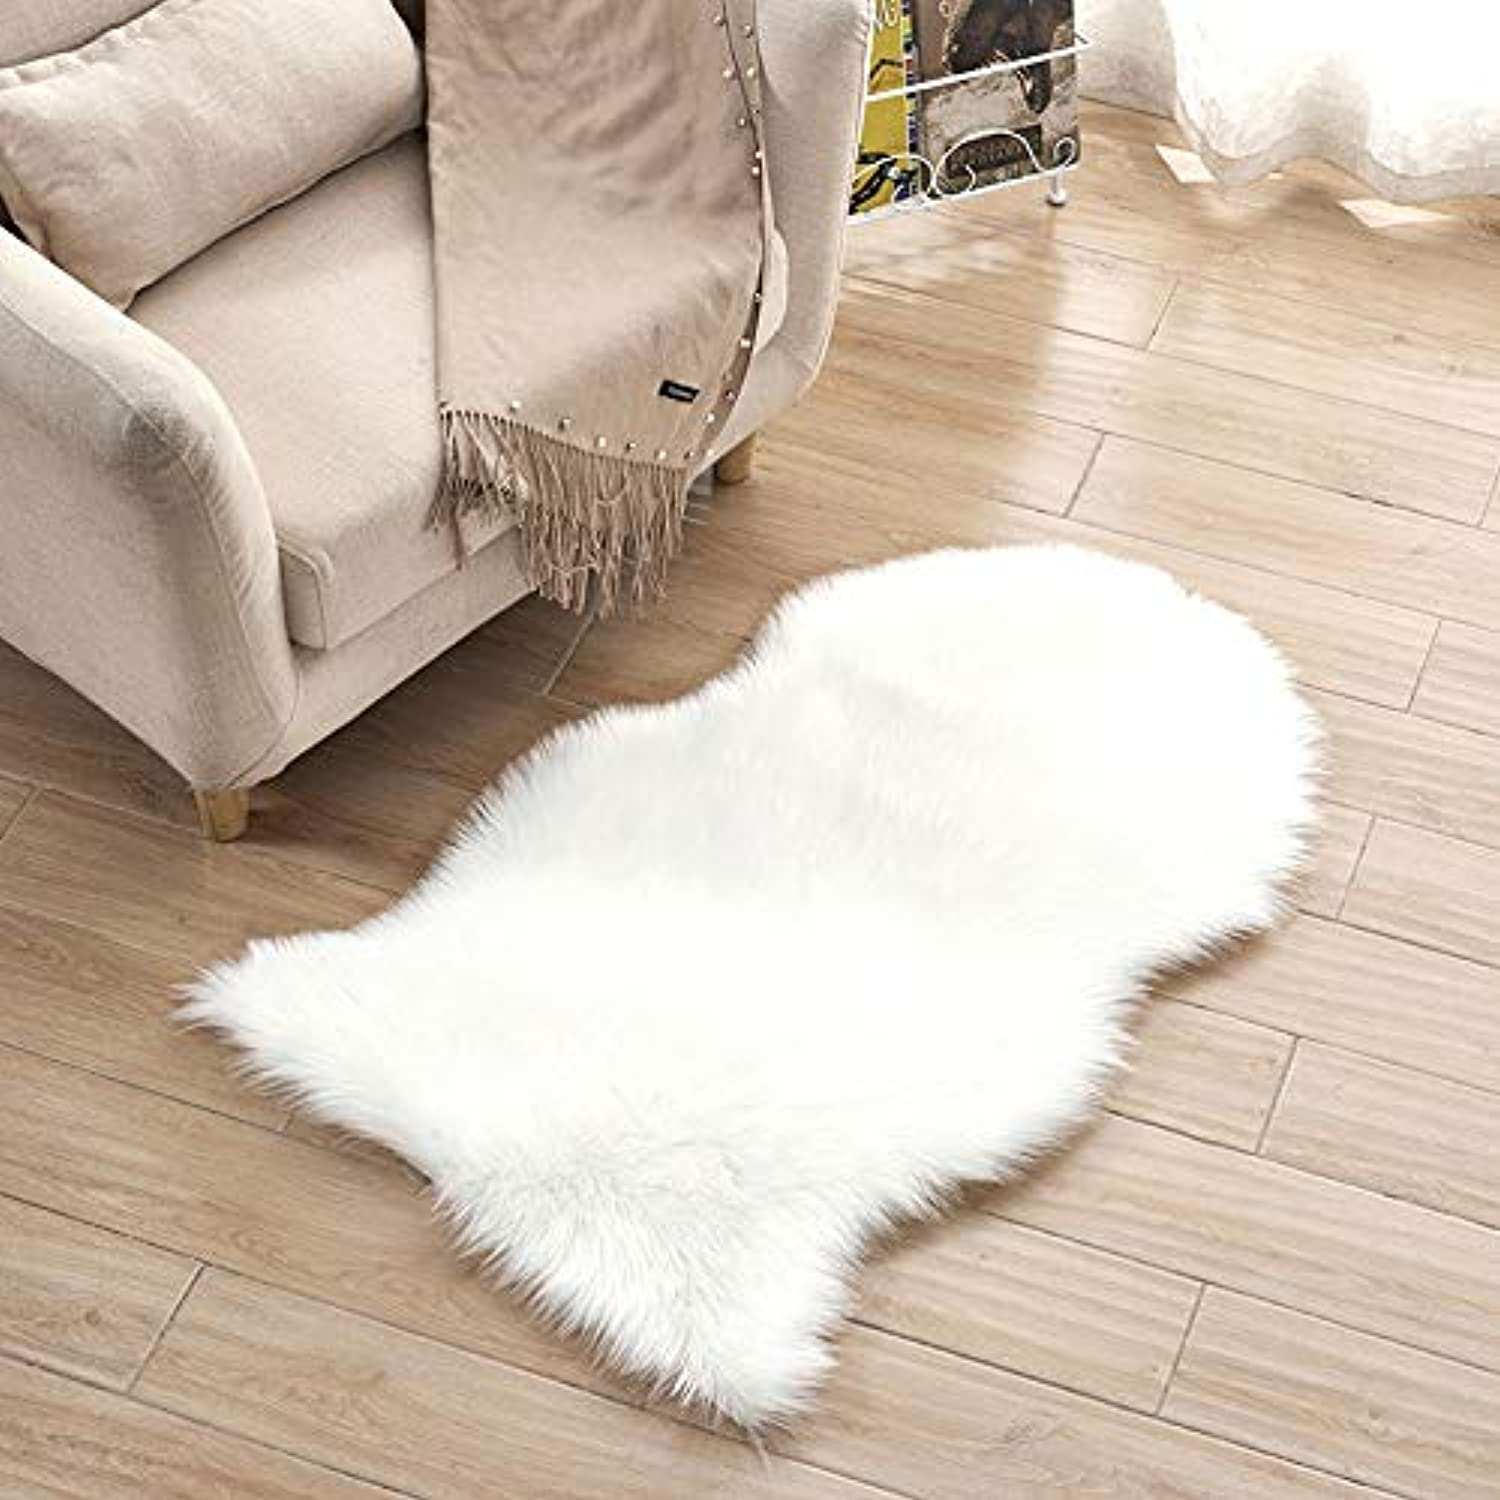 Plush Thick Carpet Bedroom Living Room Floor Mat Window Cushion Sofa Cushion, Washable and Contact with Skin - White,1P60150CM